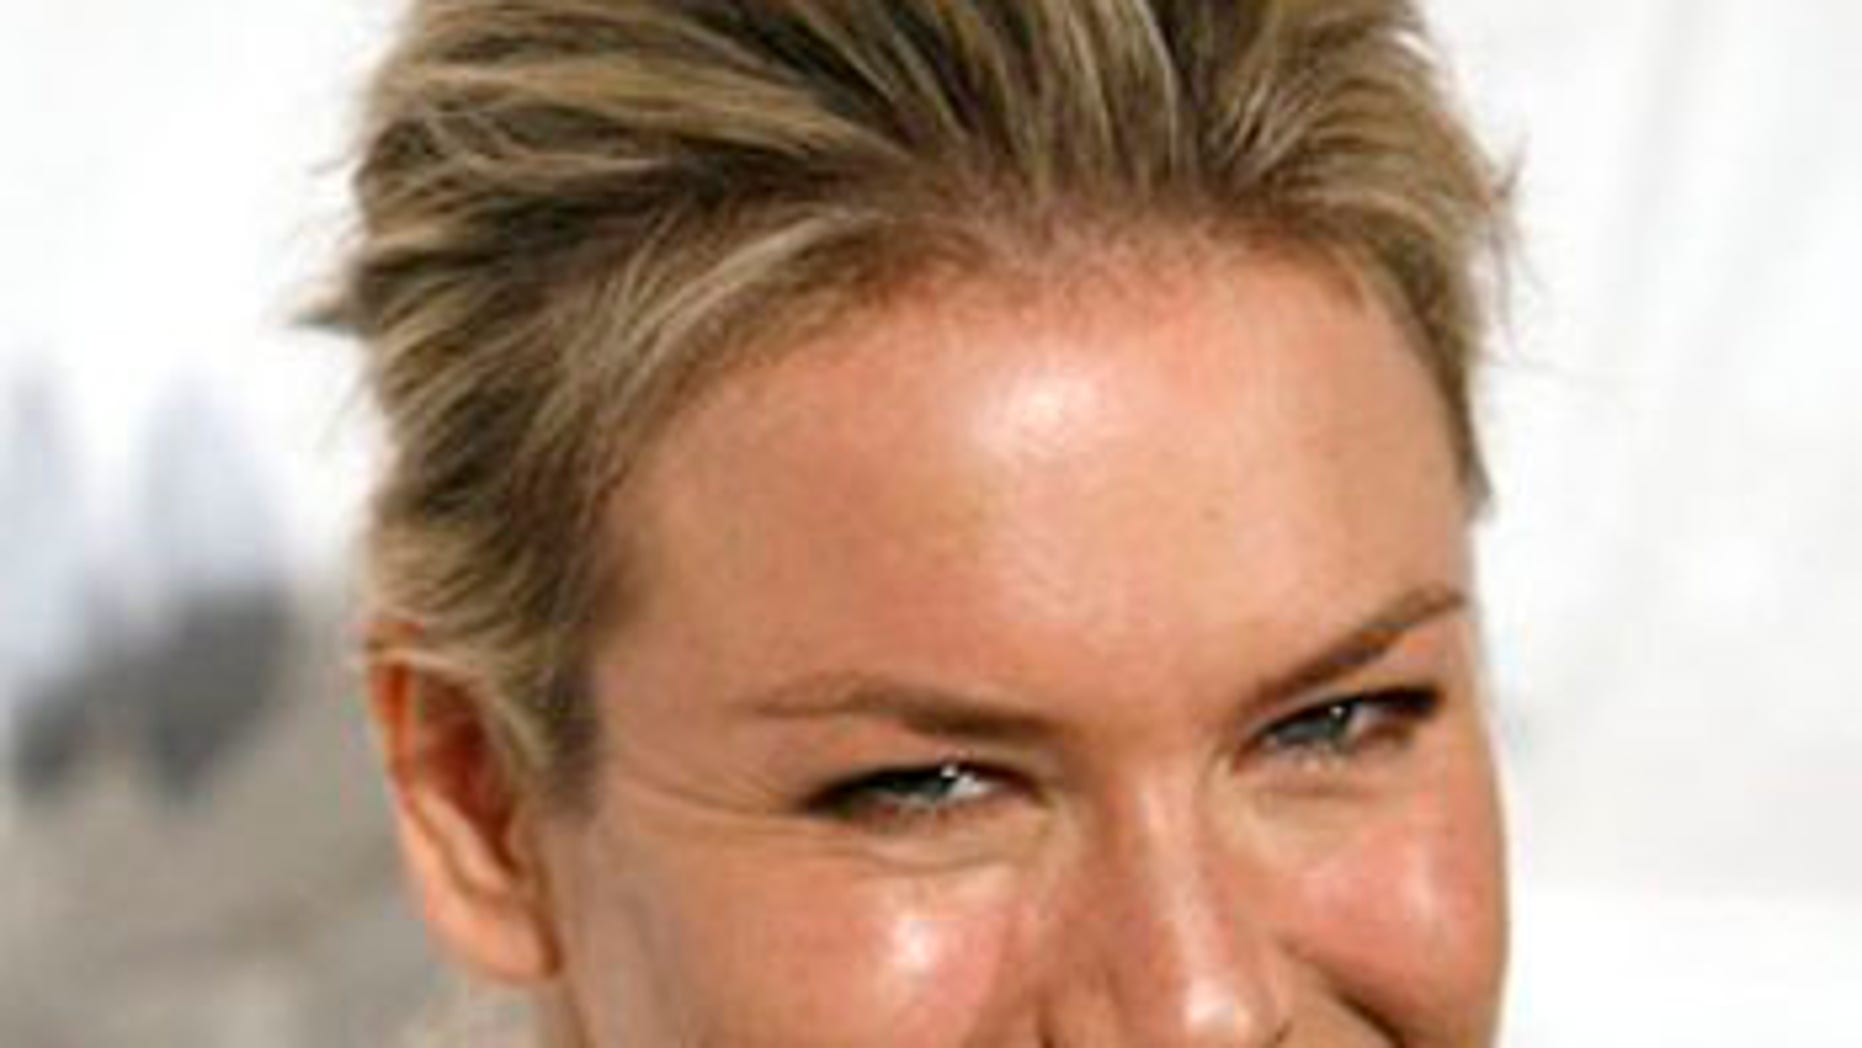 ** FILE ** In this Oct. 16, 2008 file photo, actress Renee Zellweger arrives at the International Women's Media Foundation's Courage in Journalism Awards in Beverly Hills, Calif. (AP Photo/Gus Ruelas, file)